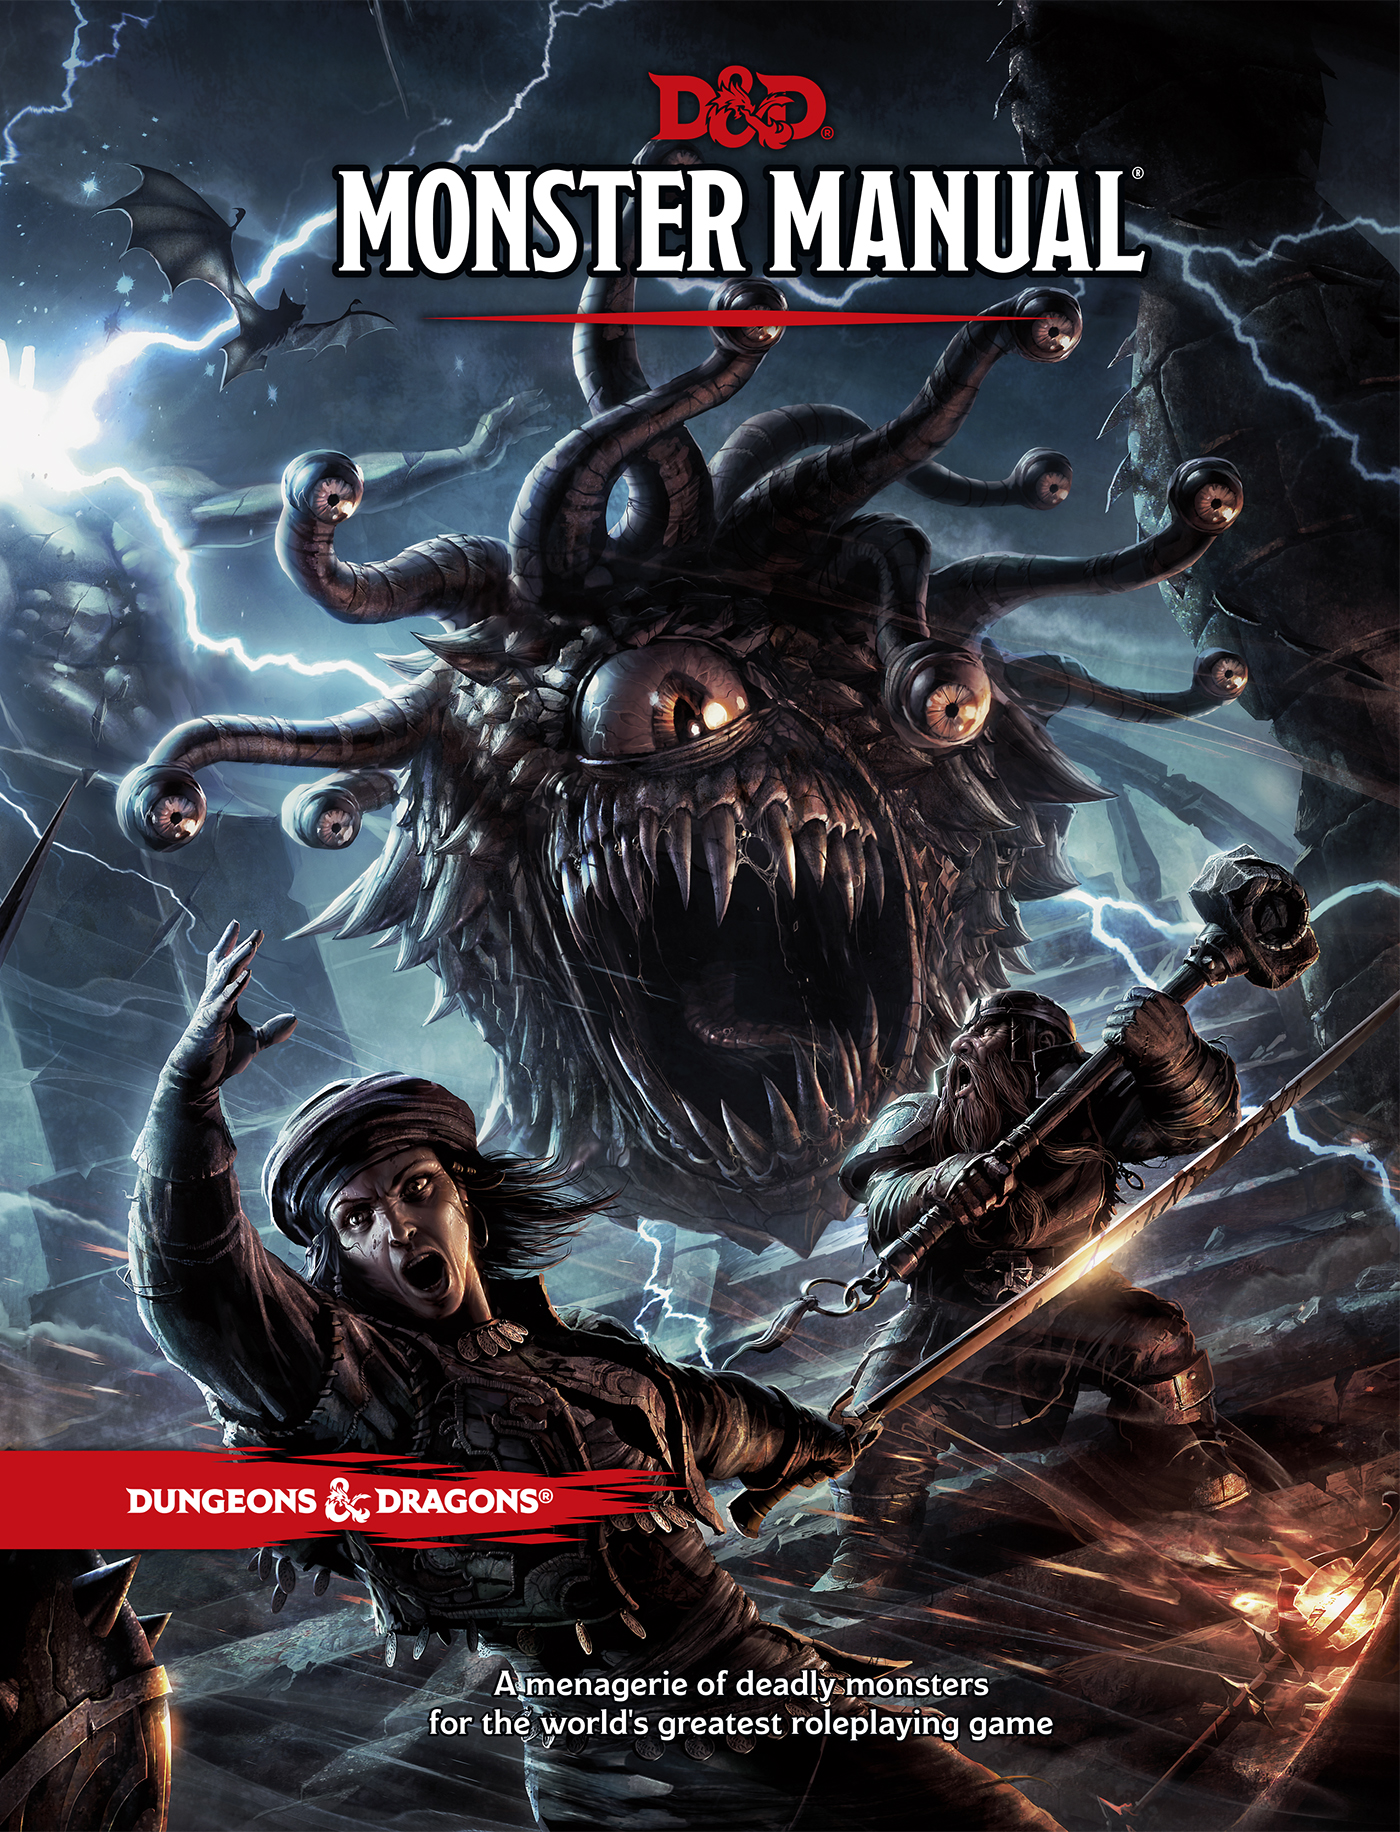 D&D 5th Edition Monster Manual Review for Dungeons & Dragons | Reviews |  The Escapist